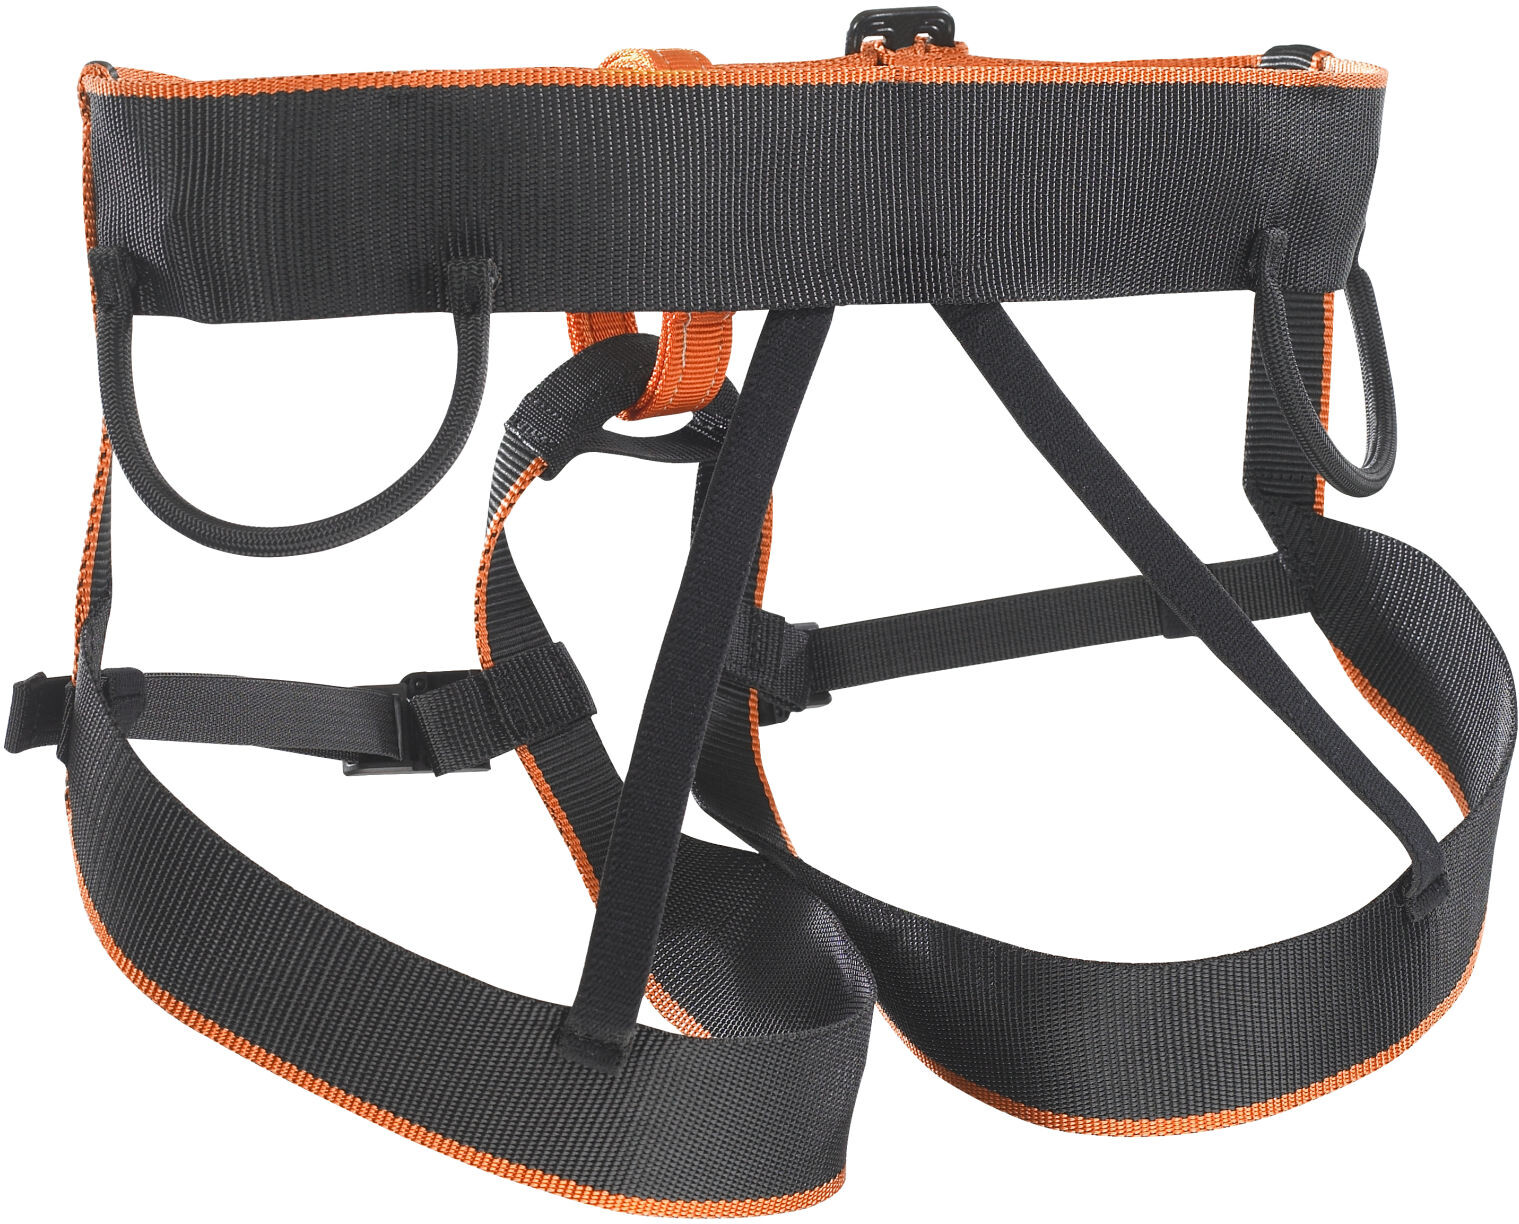 Skylotec Klettergurt Petzl : Skylotec pyrit harness black orange campz